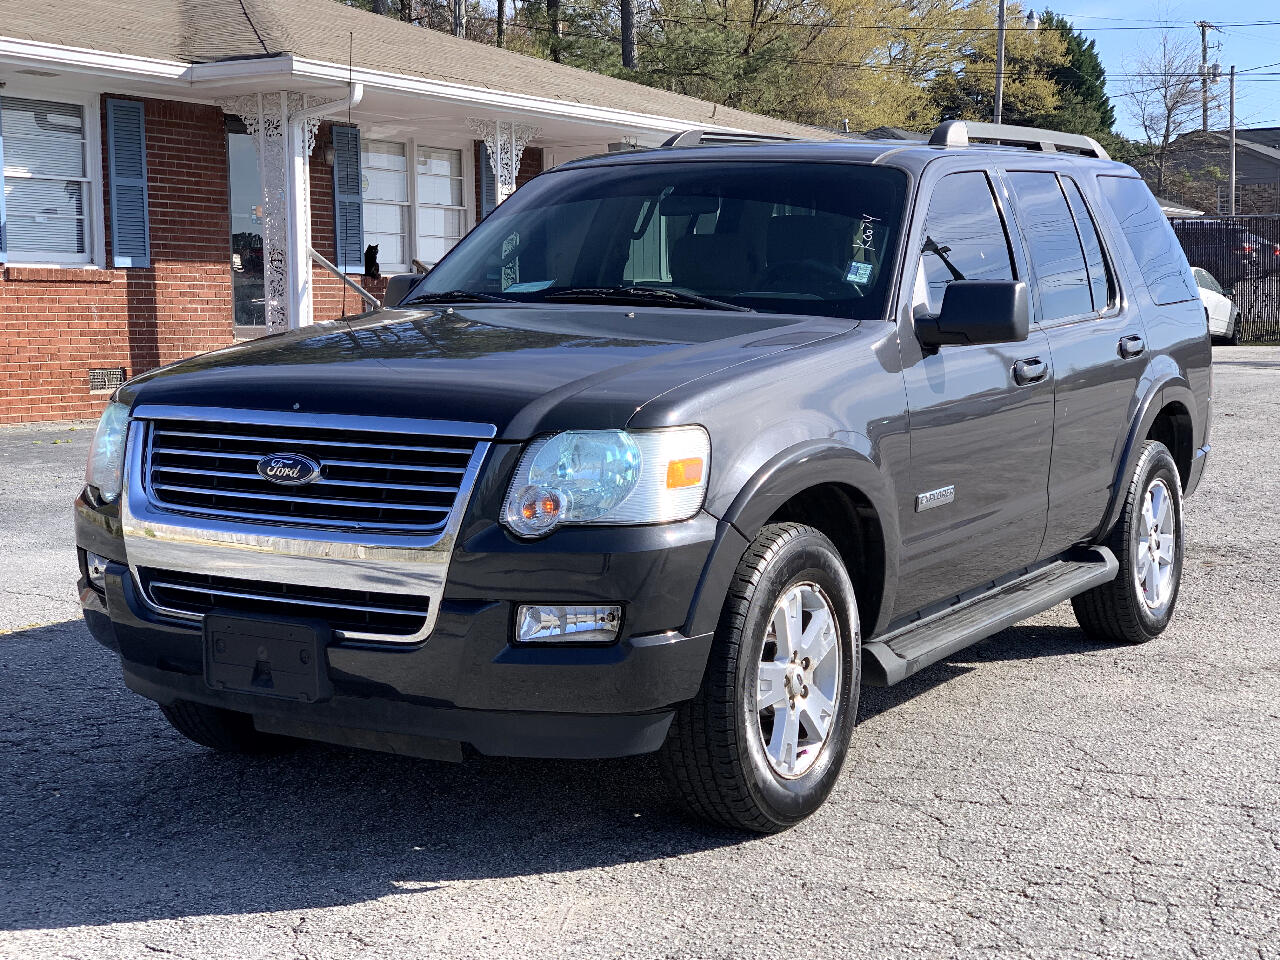 2007 Ford Explorer XLT 4.0L 2WD